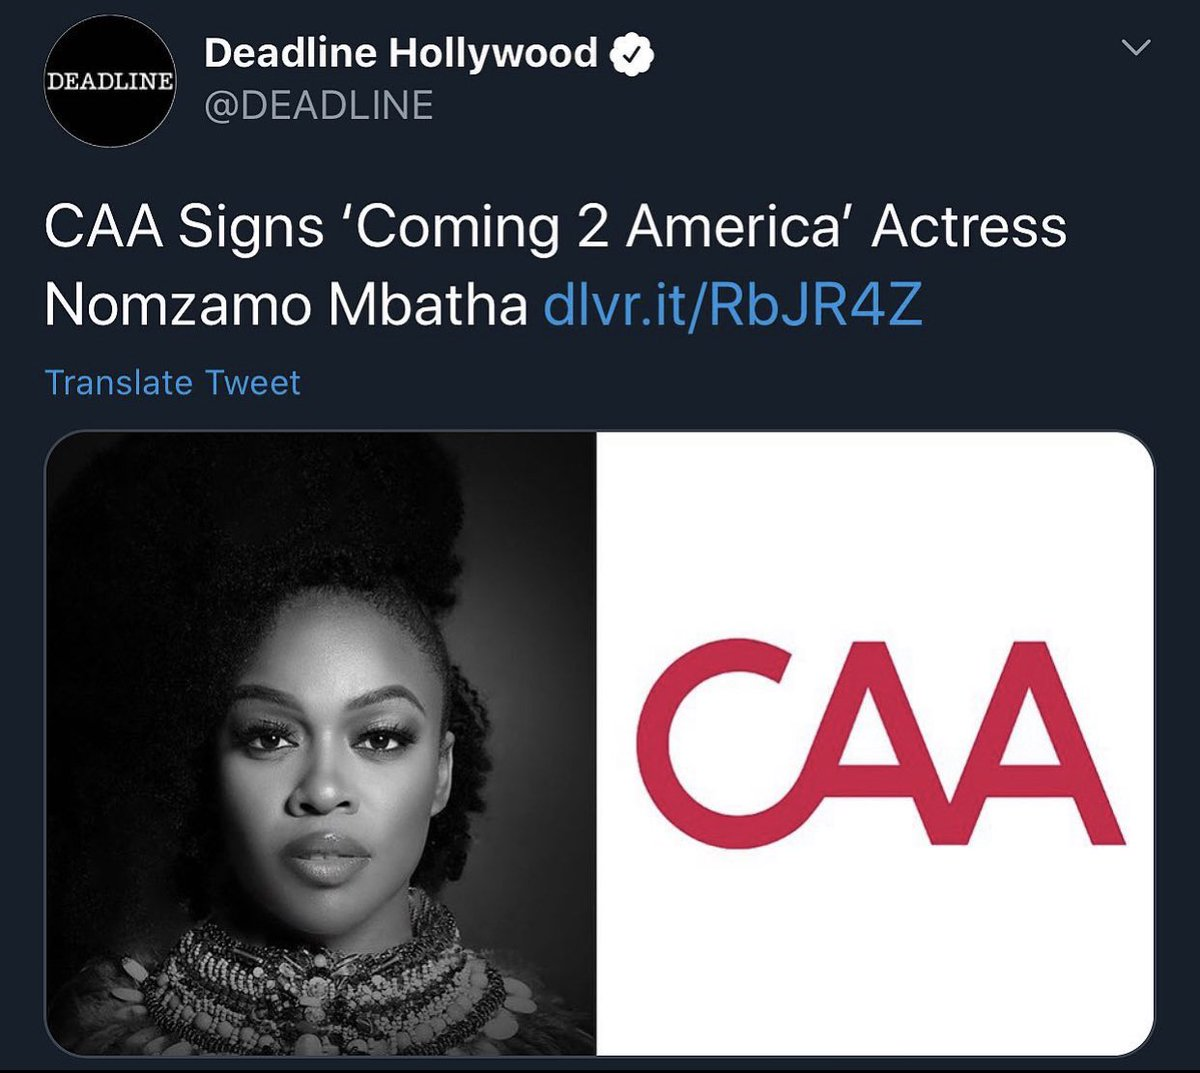 Halala👏🏾👏🏾👏🏾 Another win for actress #NomzamoMbatha as she signs with Los Angeles based talent agency CAA, which is renowned for working some of the biggest names in Hollywood and now they add Nomzamo to their roster.🇿🇦 #RealGoboza https://t.co/E4x1EurCOe